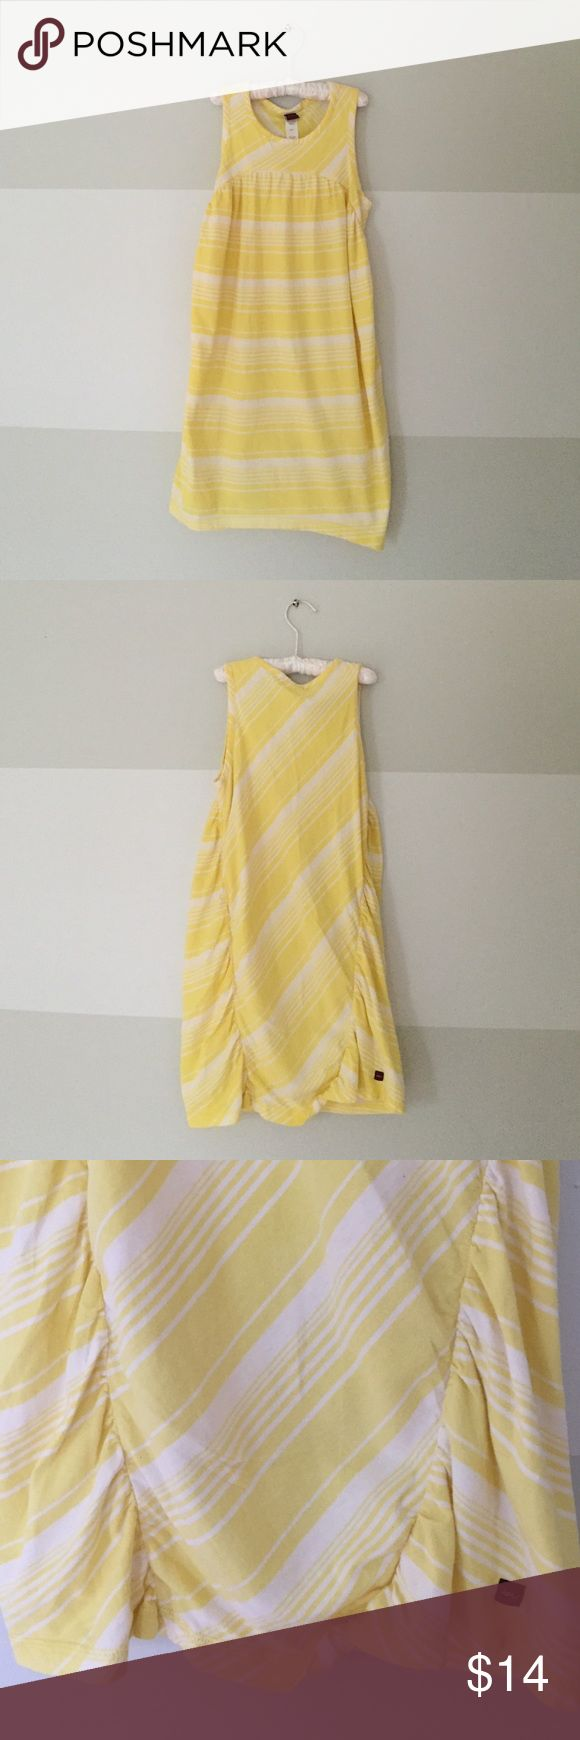 Tea Collection Yellow Striped Dress Light yellow and white striped sleeveless dress. Gathering down back gives dress shape. No stains or signs of wear. Tea Collection Dresses Casual